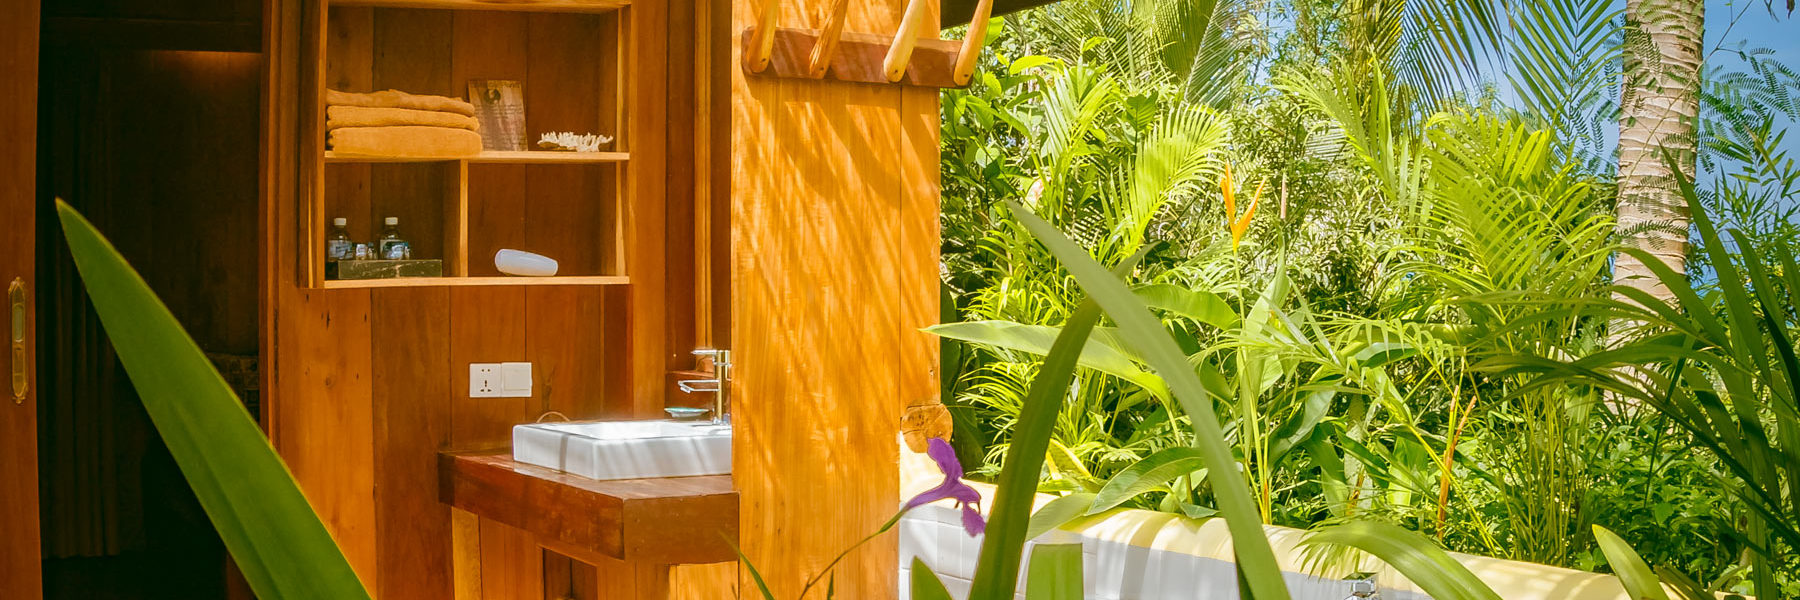 Bungalow Suite Deluxe, open air bathroom with bathtub in a tropical garden and view to the Pacific Ocean in Veranda Natural Resort, Kep - Cambodia.